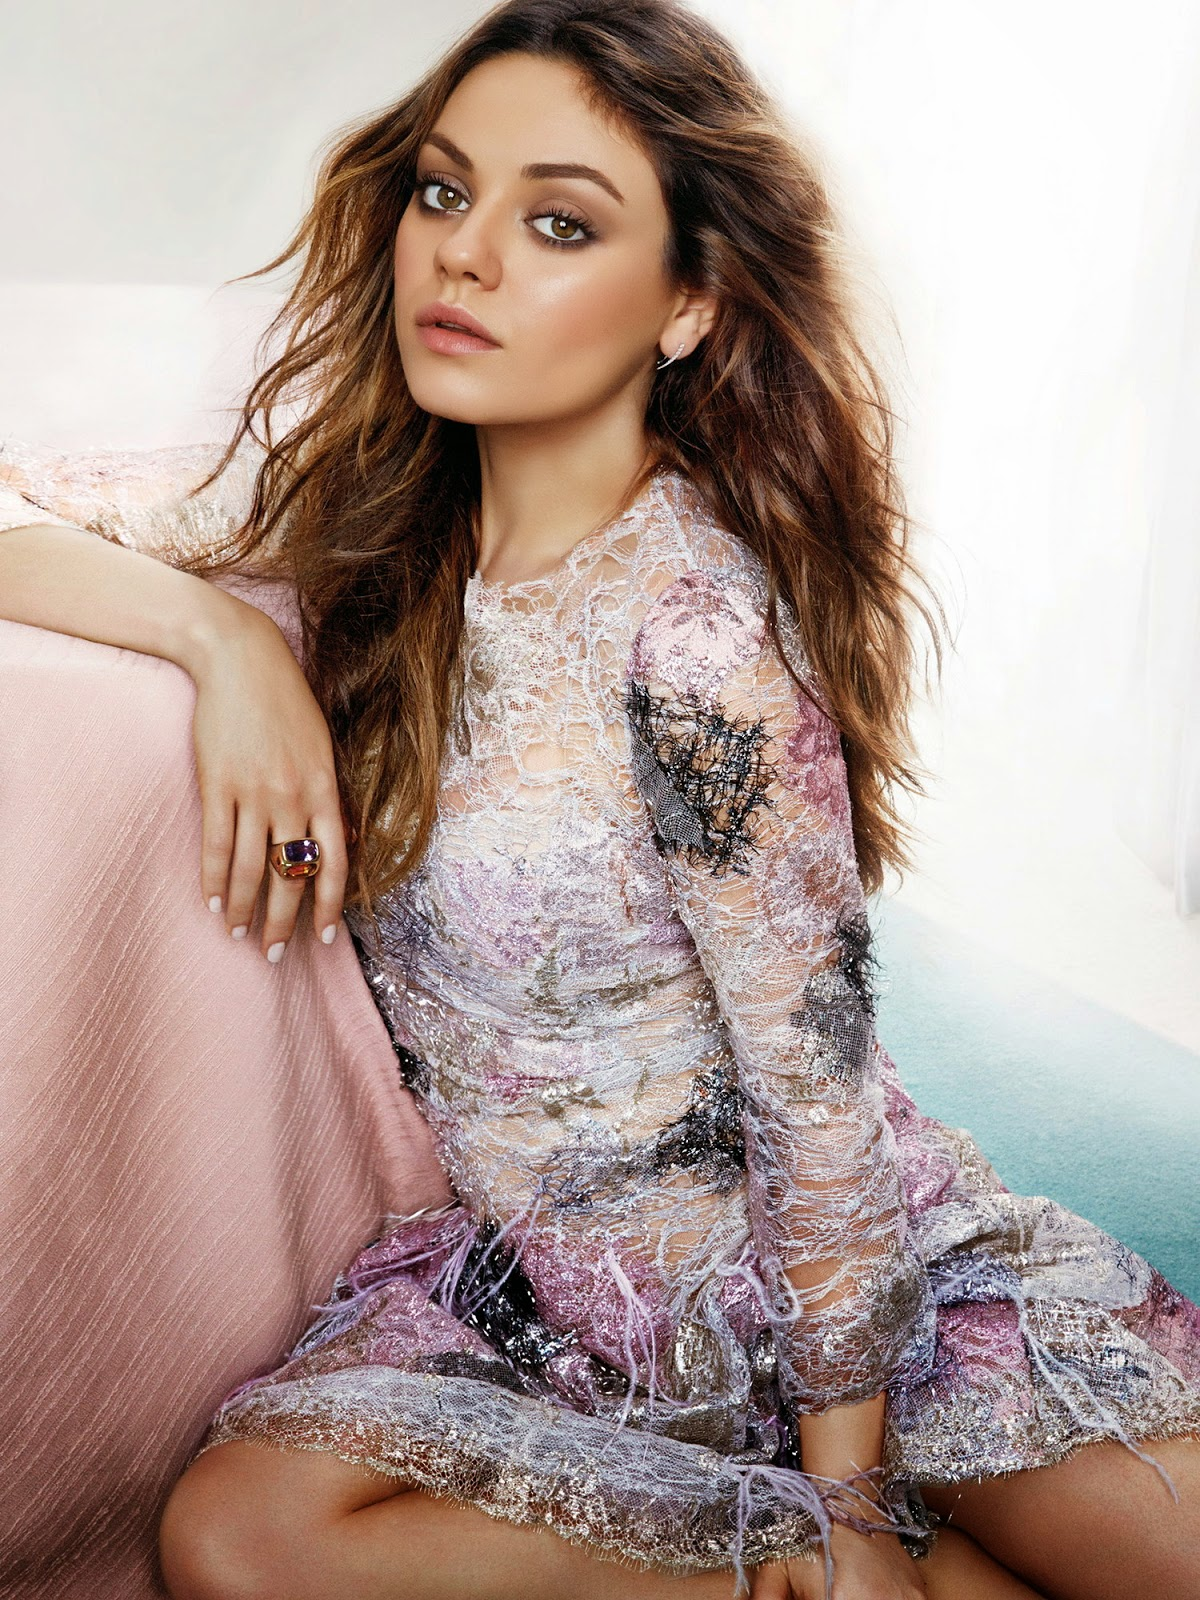 Mila Kunis Tesh PhotoShoot for Marie Claire June 2014